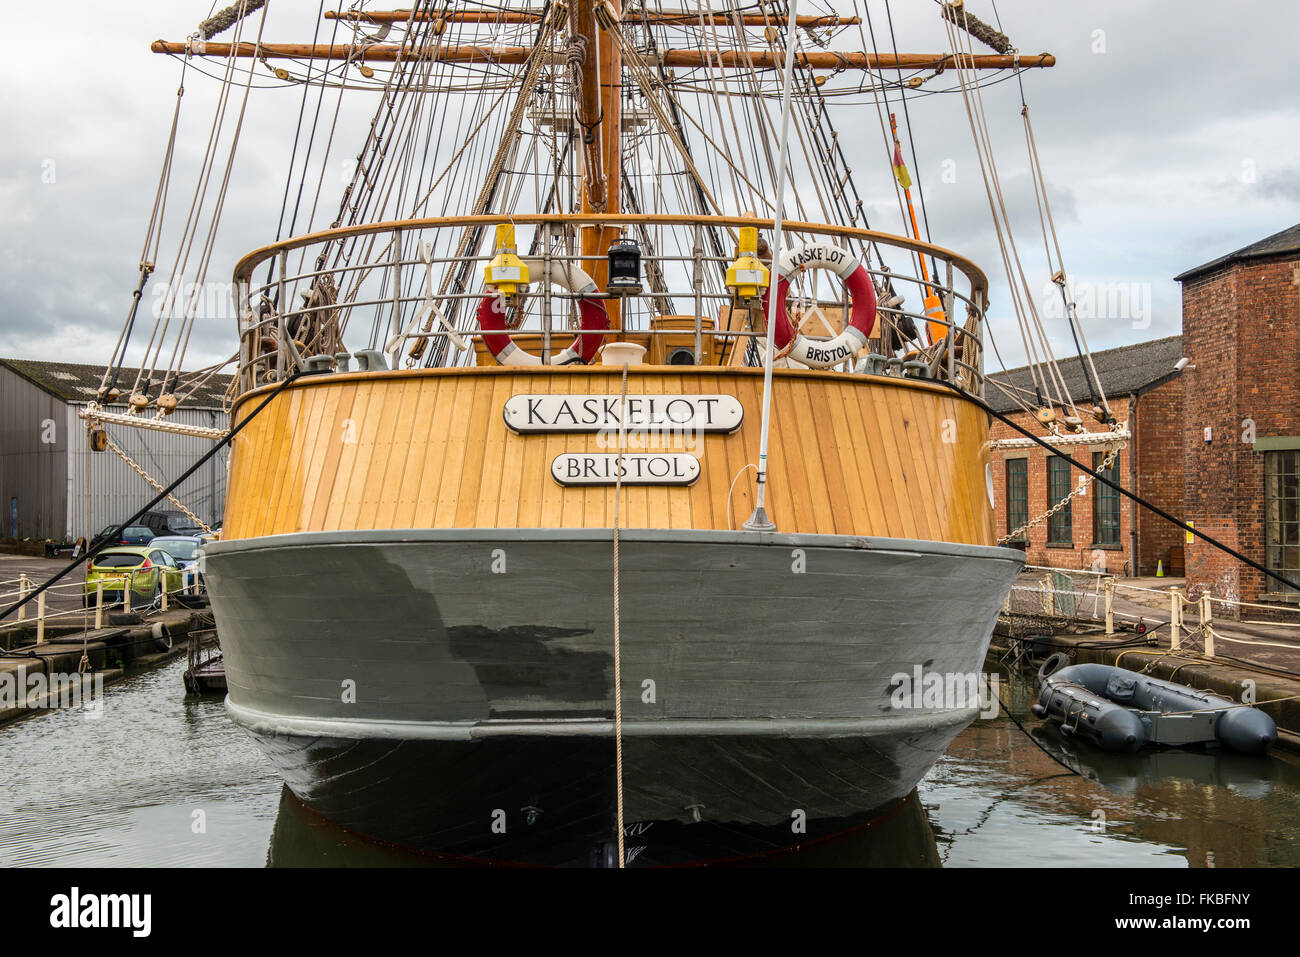 The Kaskelot, a three masted barque, based in Gloucester Quays. - Stock Image